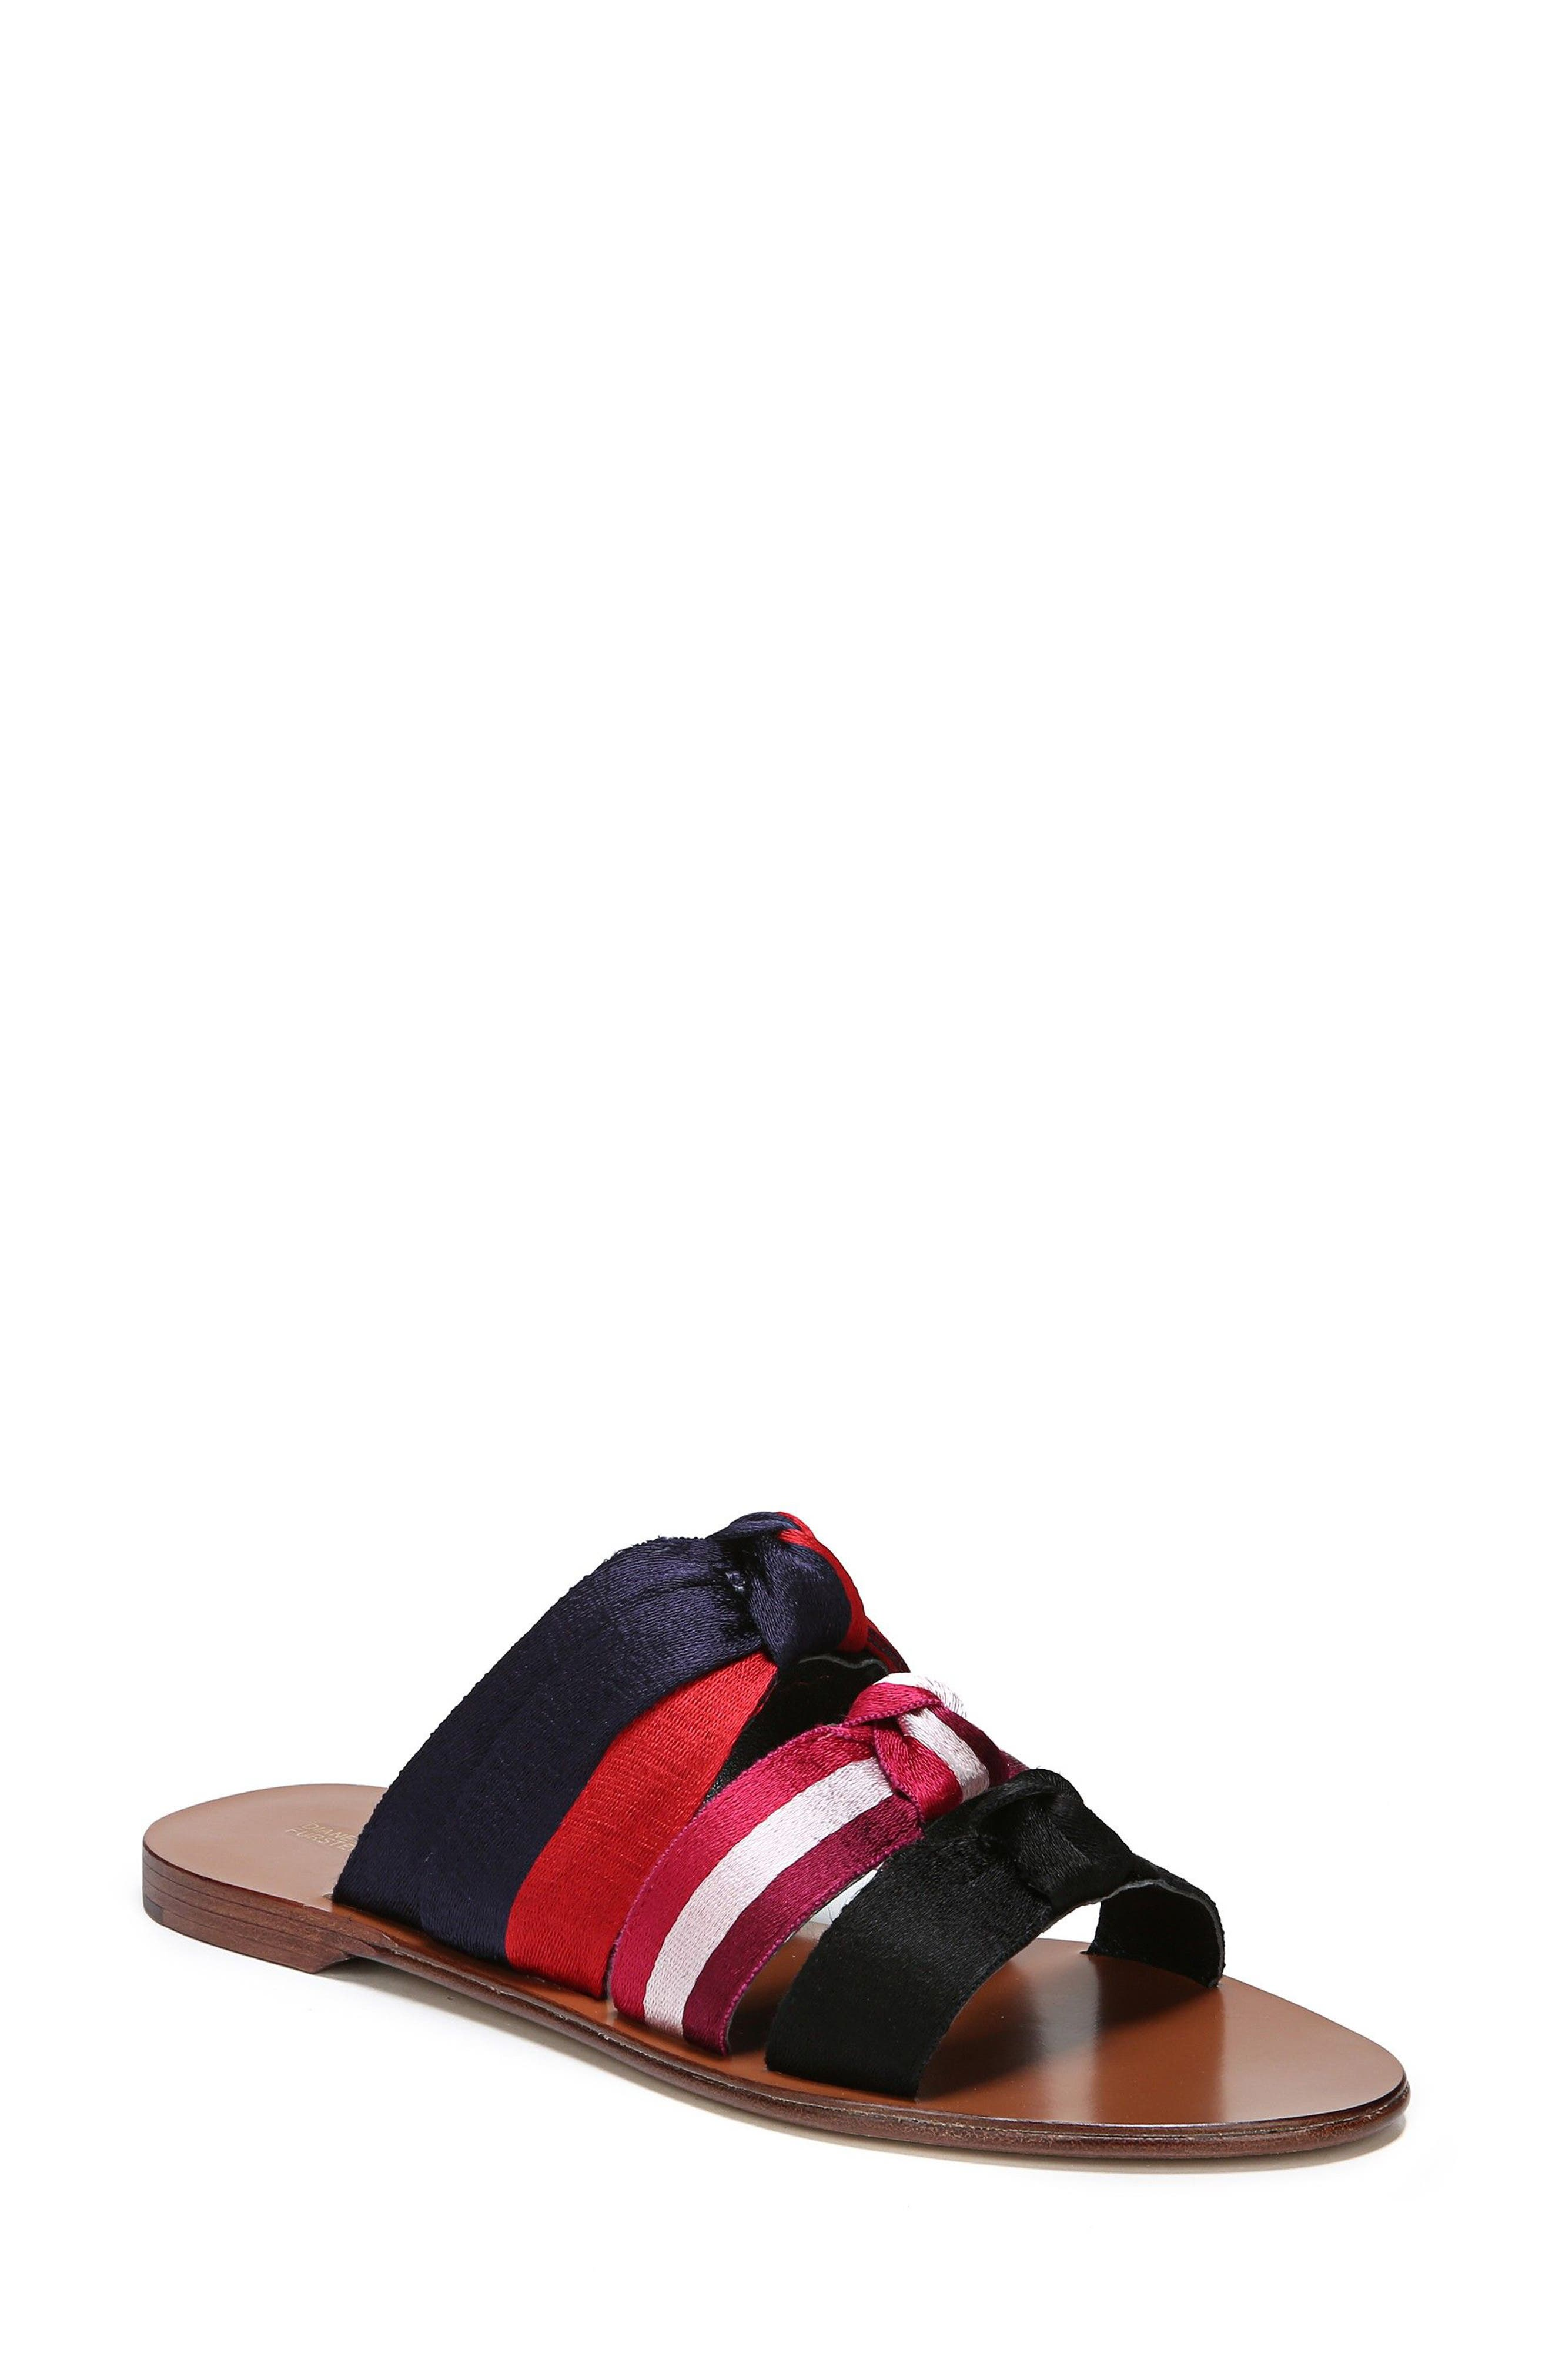 Bree Strappy Slide Sandal,                             Main thumbnail 1, color,                             002